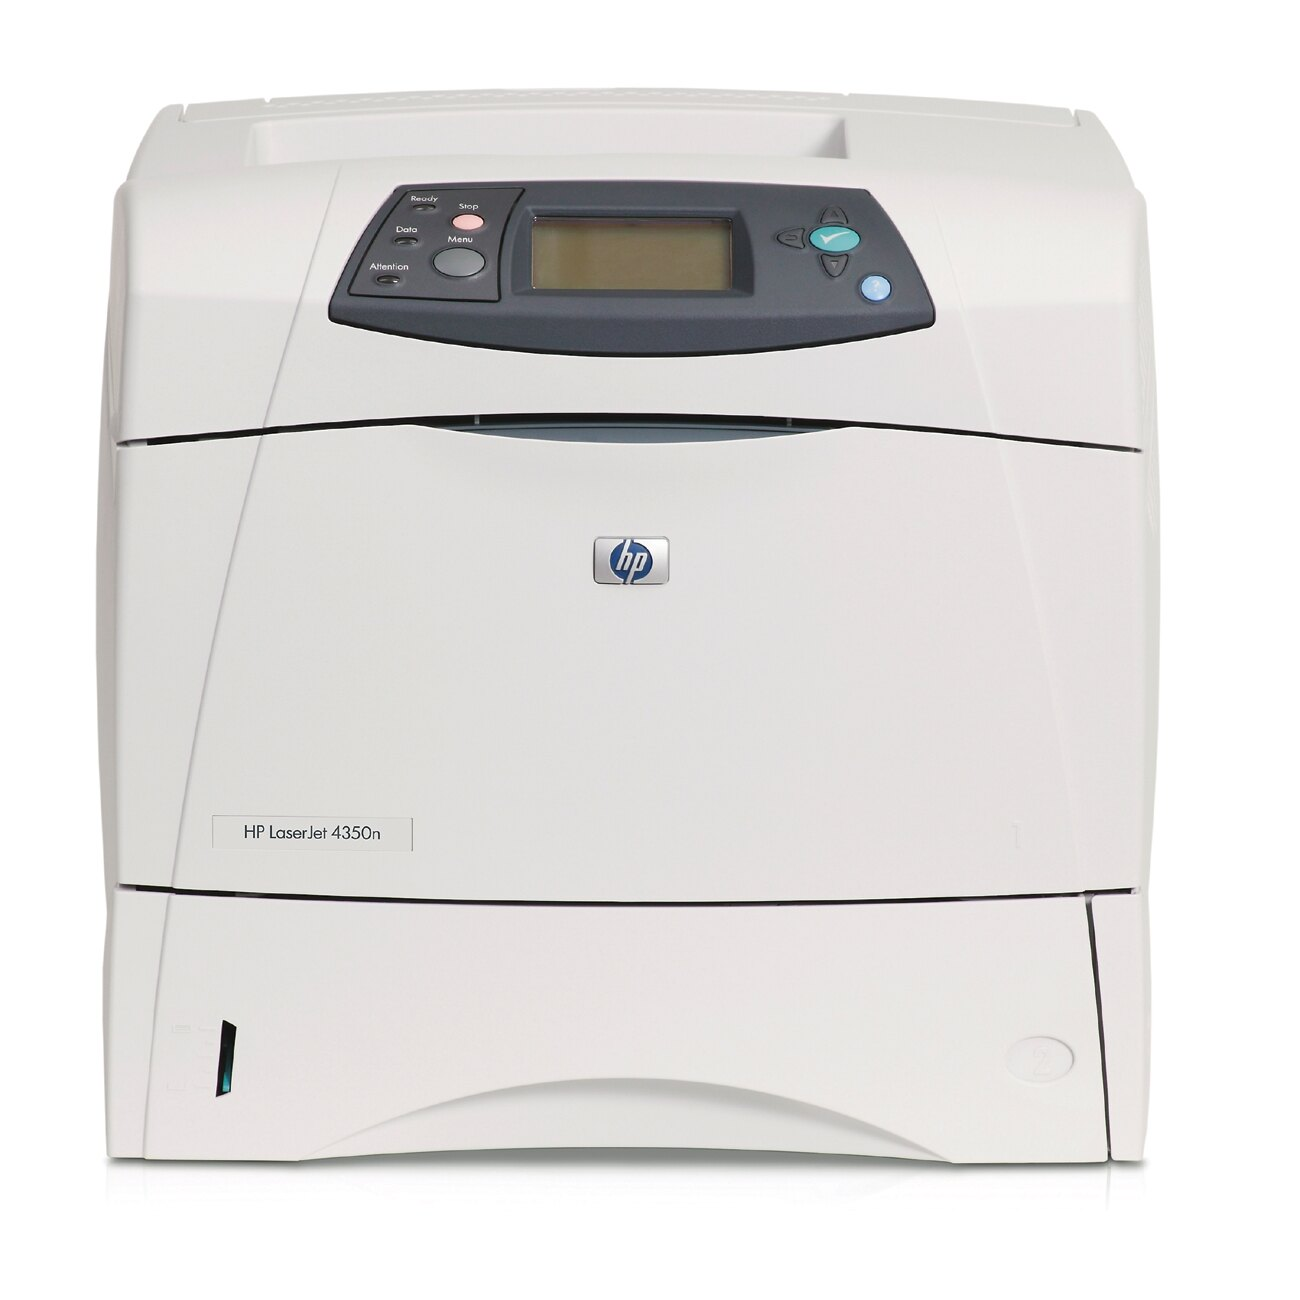 HP LaserJet 4350n Laser Printer - Monochrome - 1200 x 1200 dpi Print - Plain Paper Print - Desktop - 55 ppm Mono Print - Letter, Legal, Executive, Statement, Envelope No. 10, Monarch Envelope, Custom Size - 600 sheets Standard Input Capacity - 250000 Duty 0